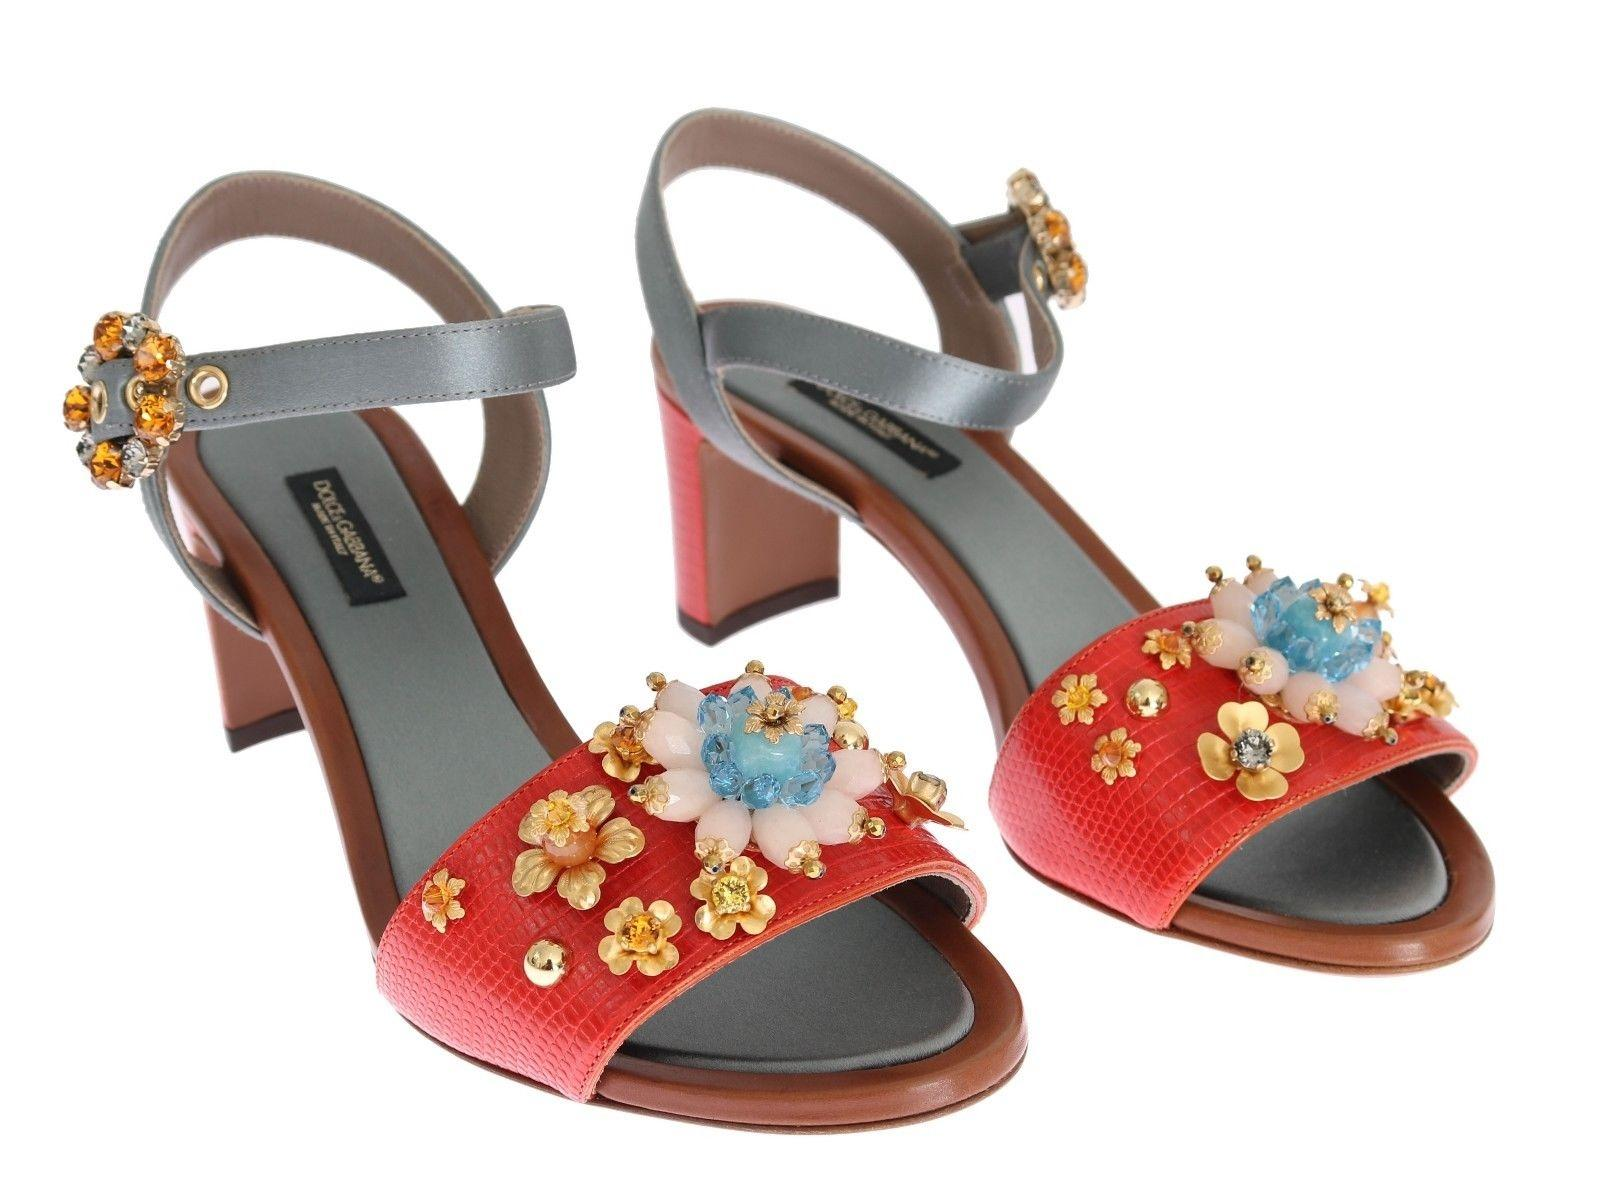 5cb2391c214c Dolce Gabbana Dolce   Gabbana Red Leather Floral Crystal Sandals Sandals  Sandals Size US 6.5 Regular (